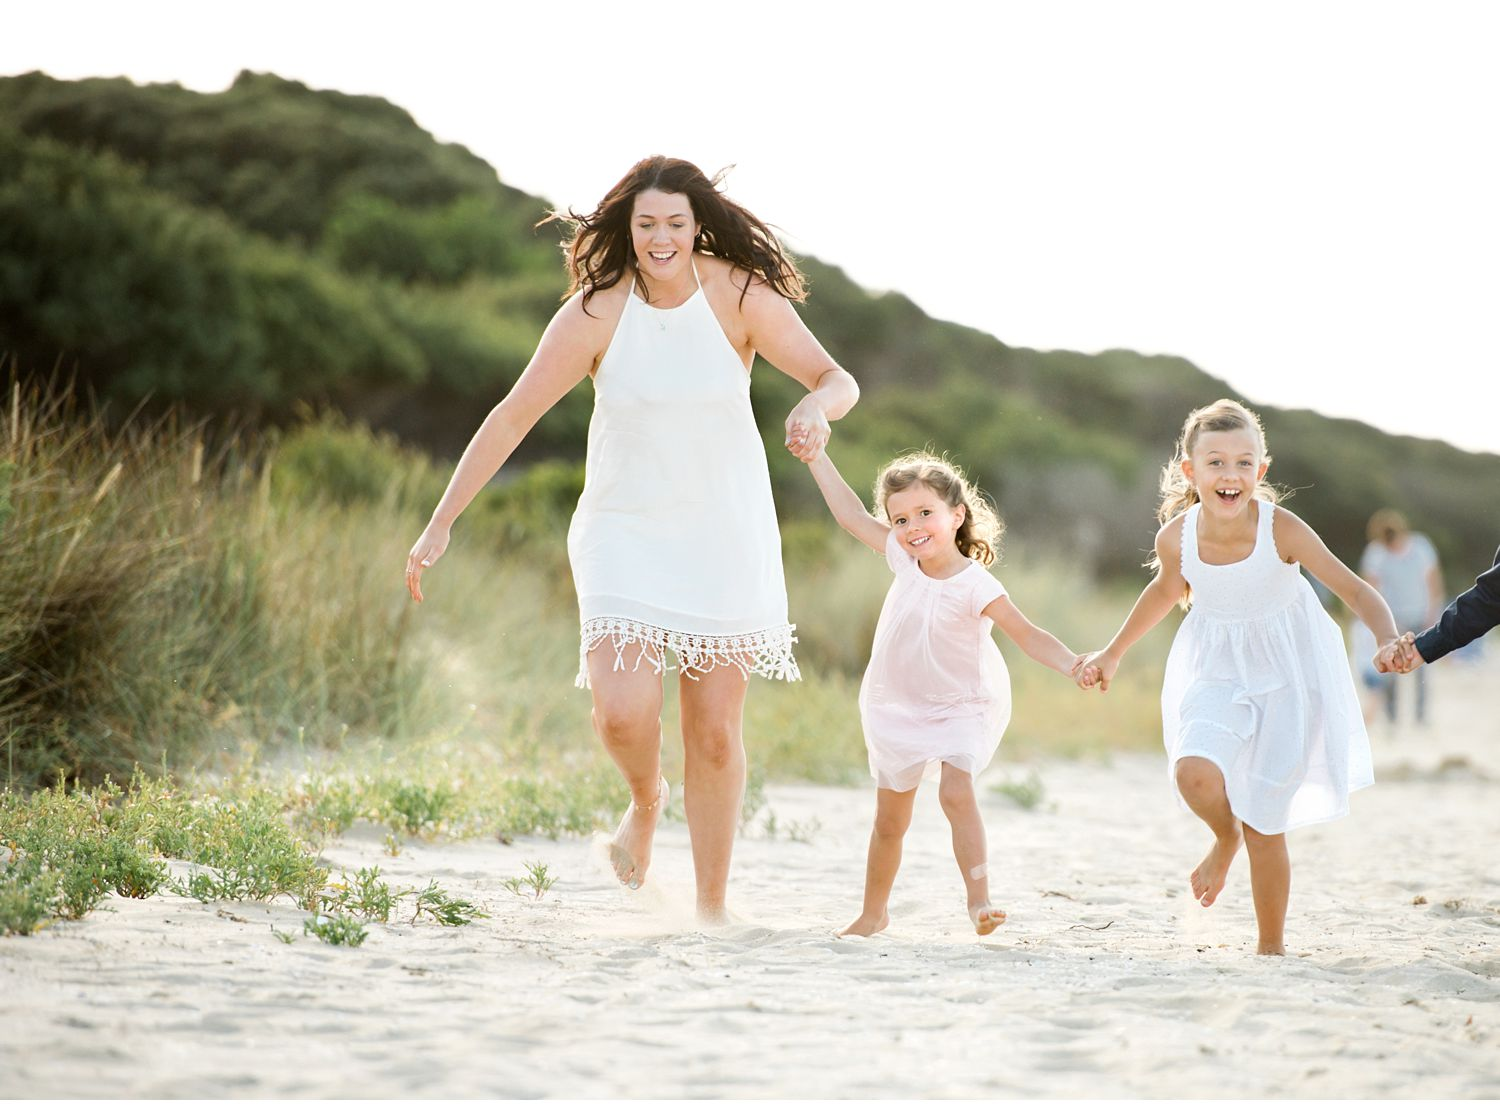 bec-stewart-photography-extended-family-photography-session-melbourne-australia-city-of-casey-2.jpg